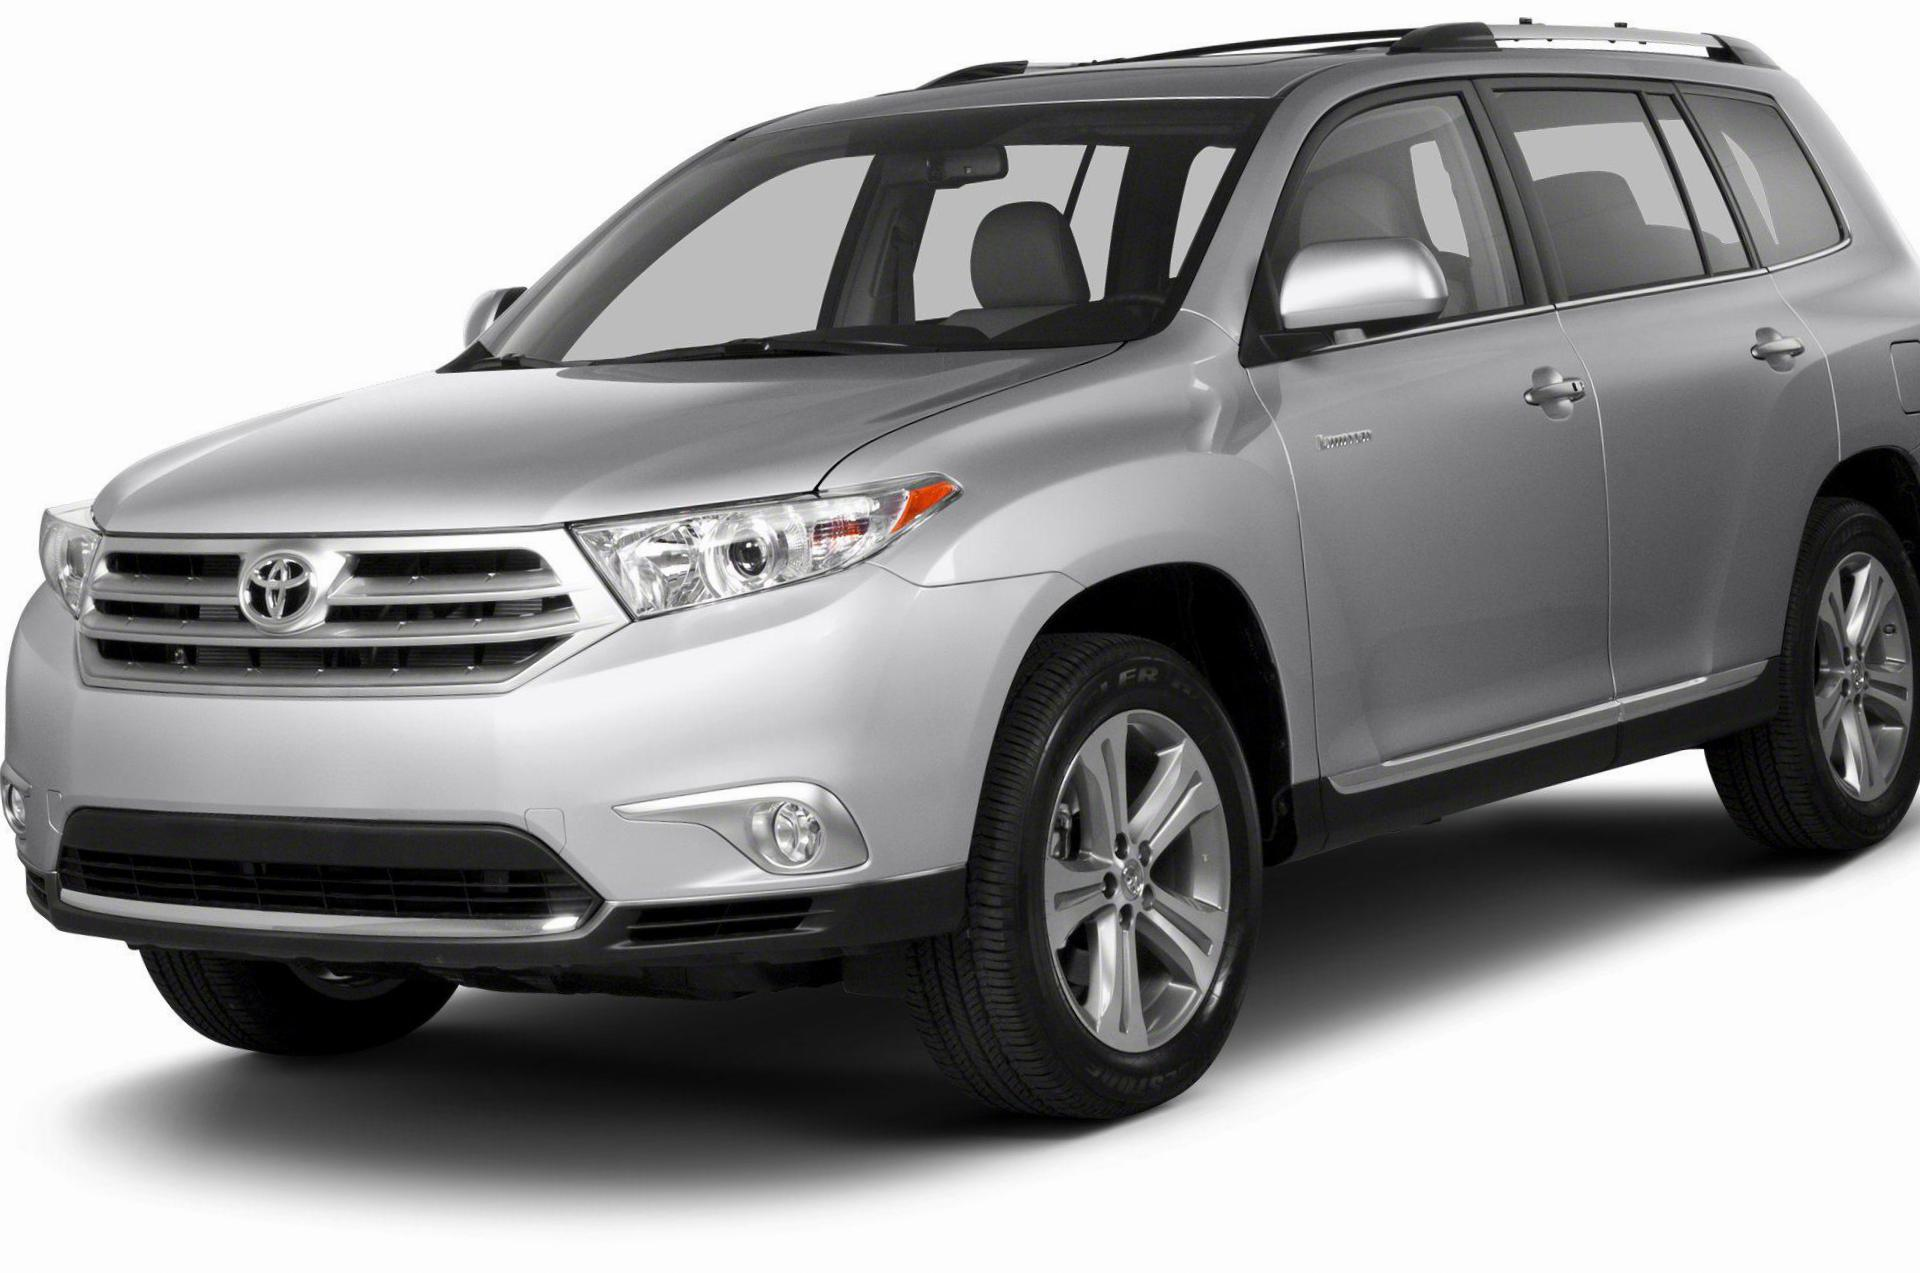 Highlander Toyota review 2011